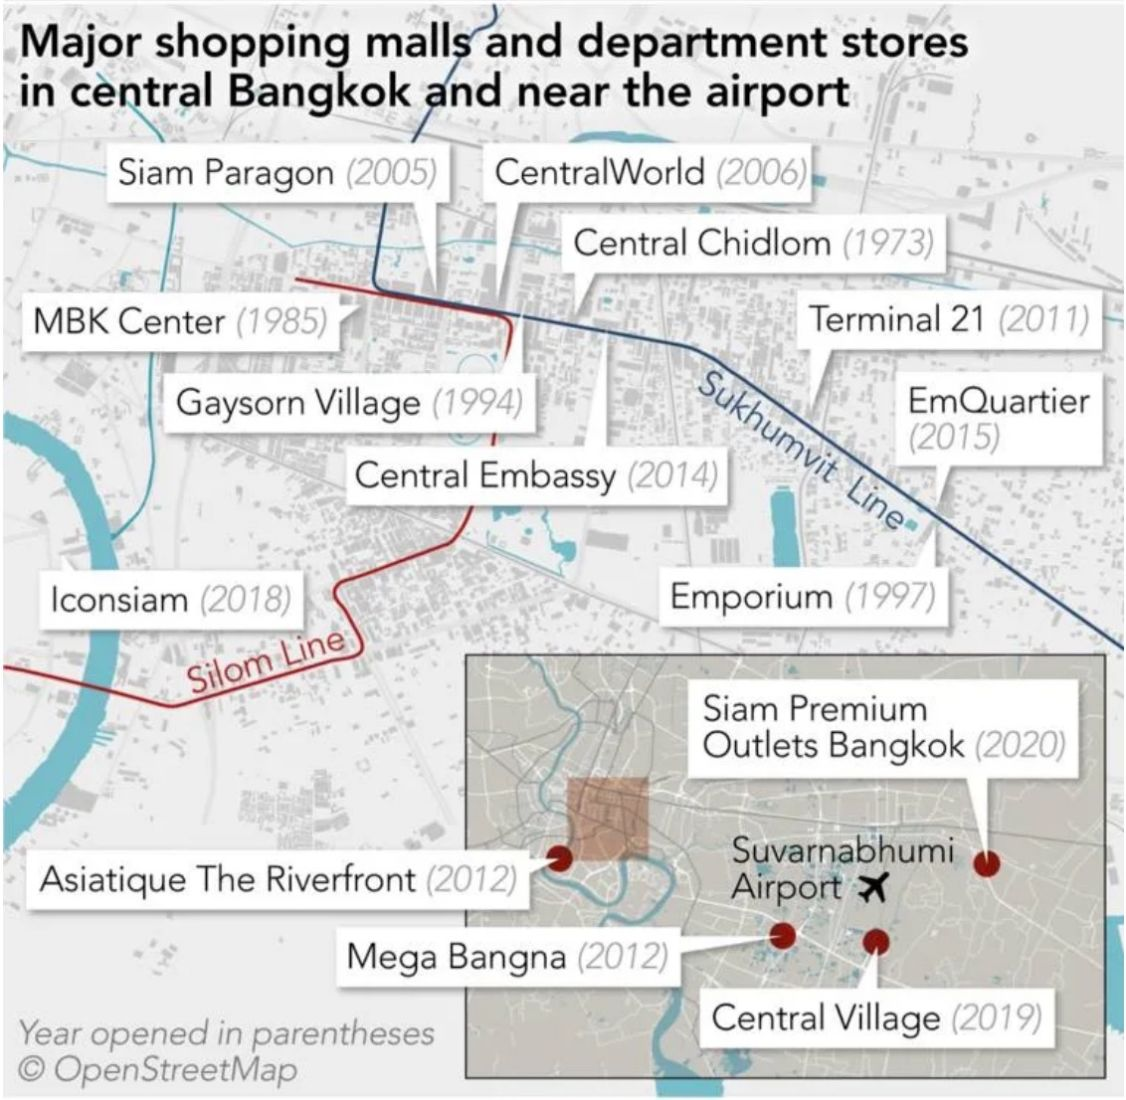 Bangkok's shopping malls struggle under tourist ban, fierce competition | News by Thaiger